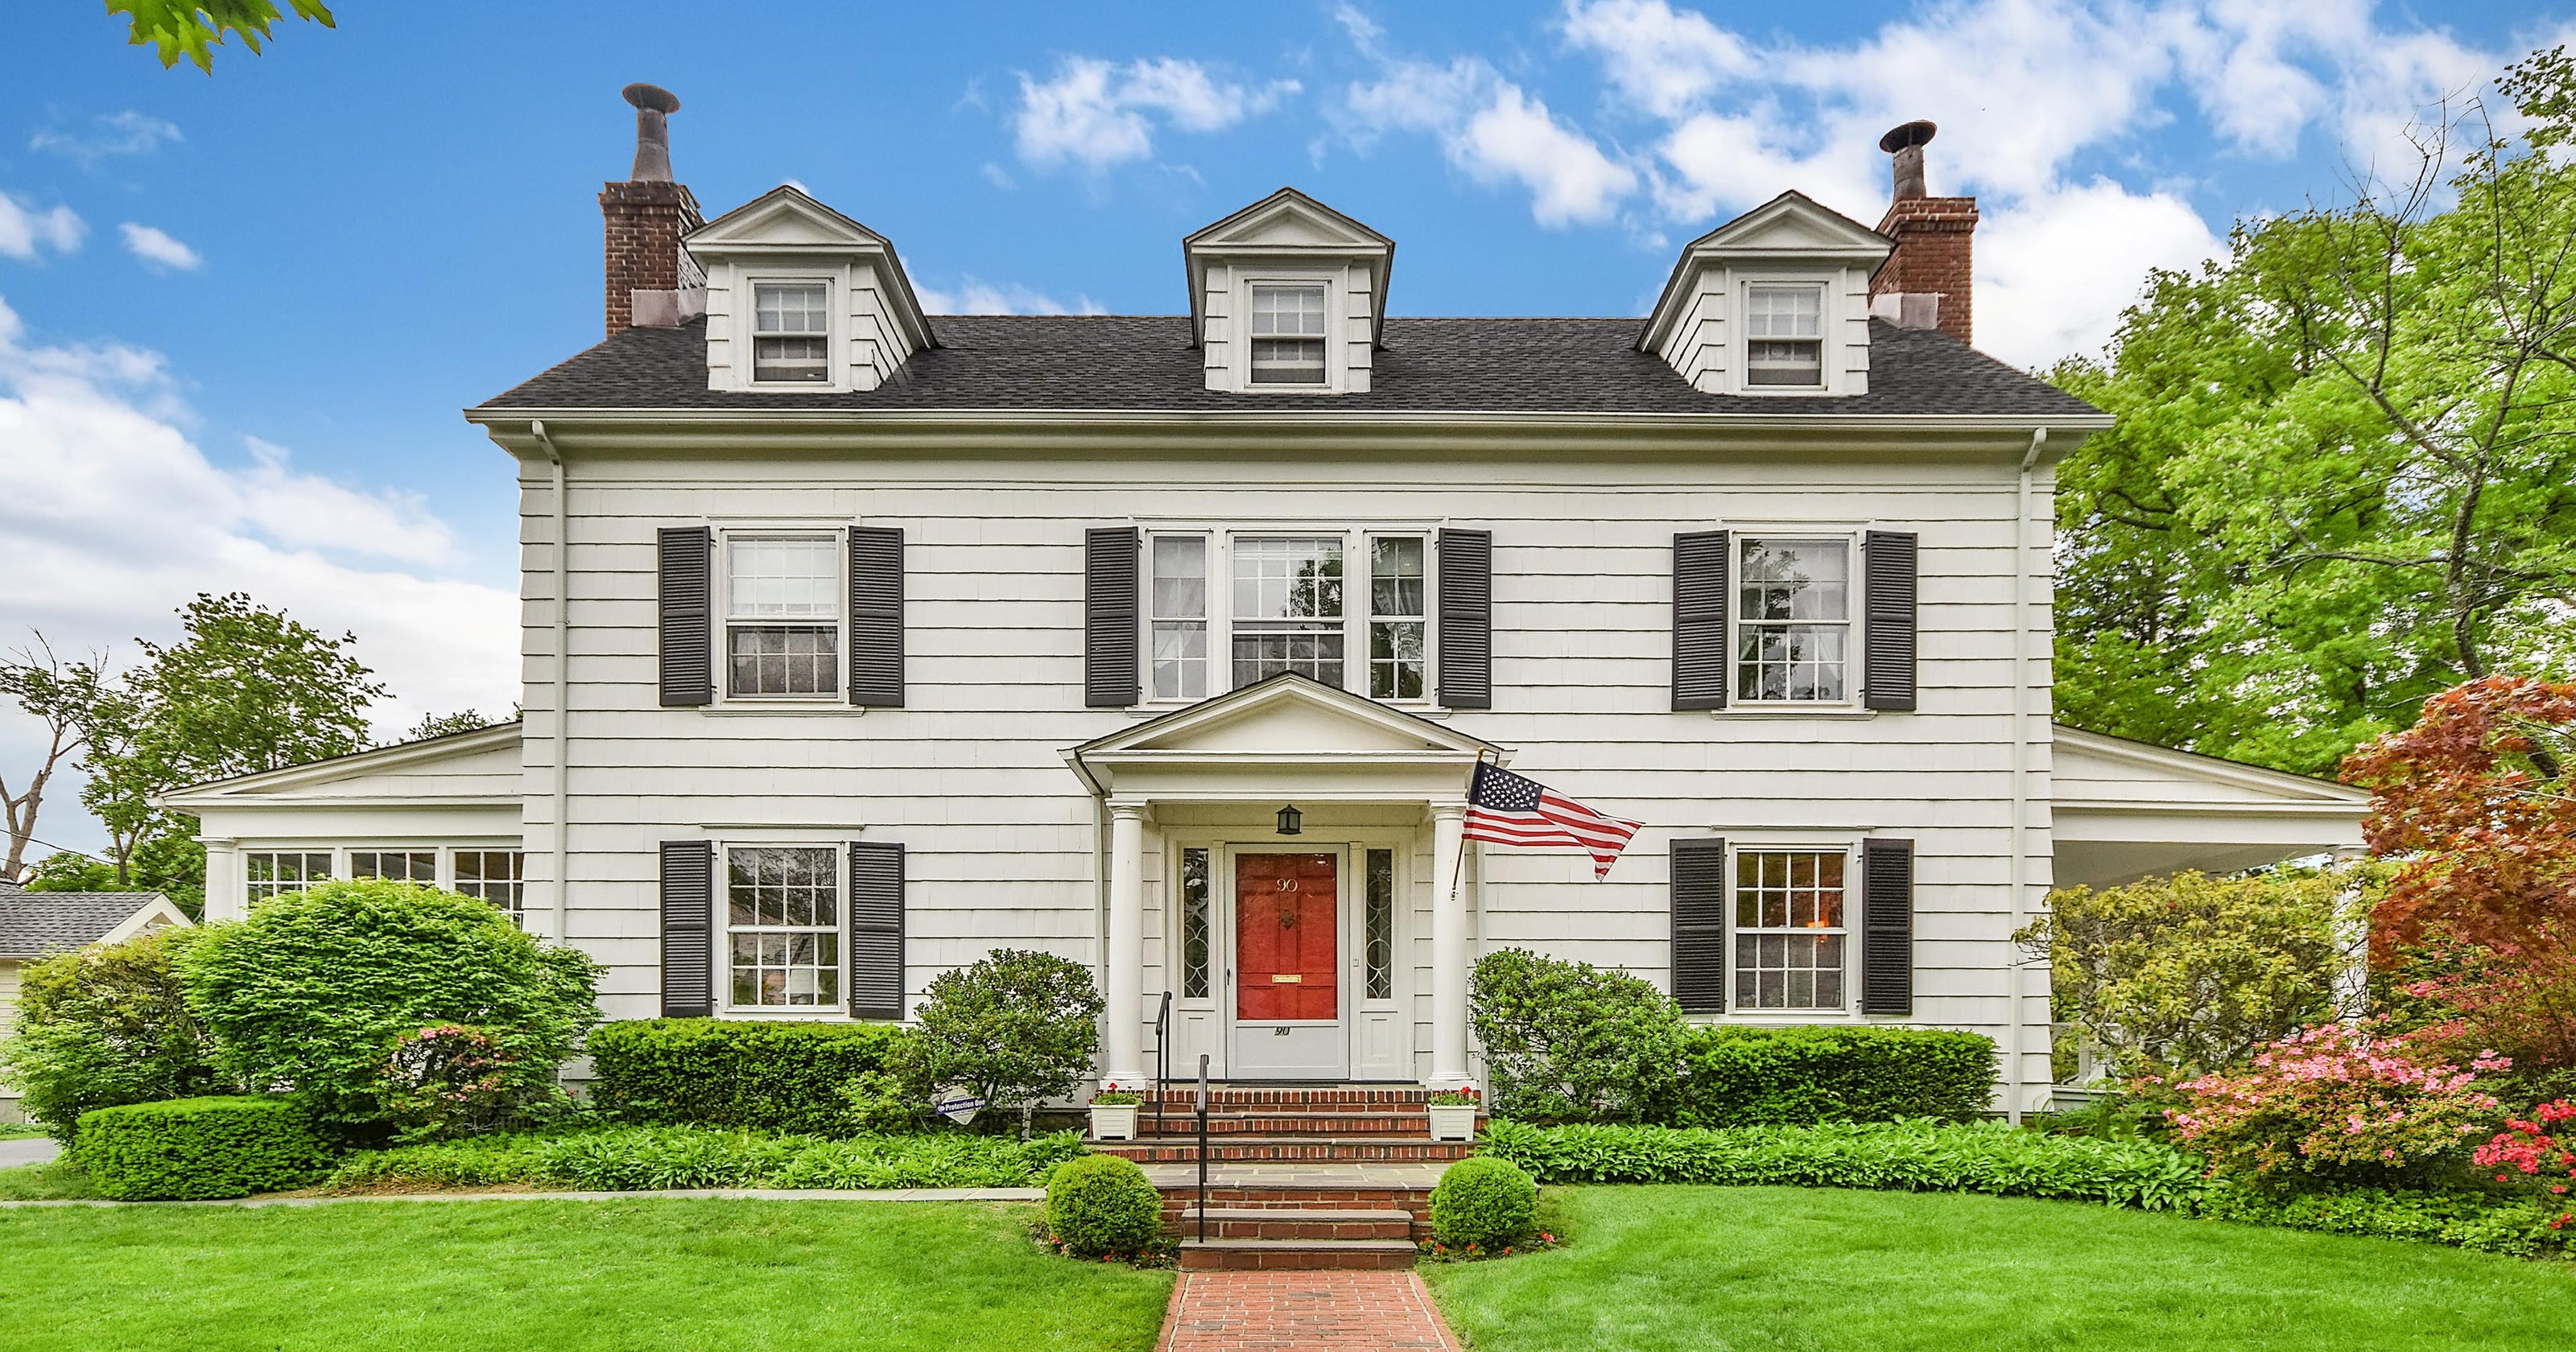 Mad Men House On The Market For 11 Million